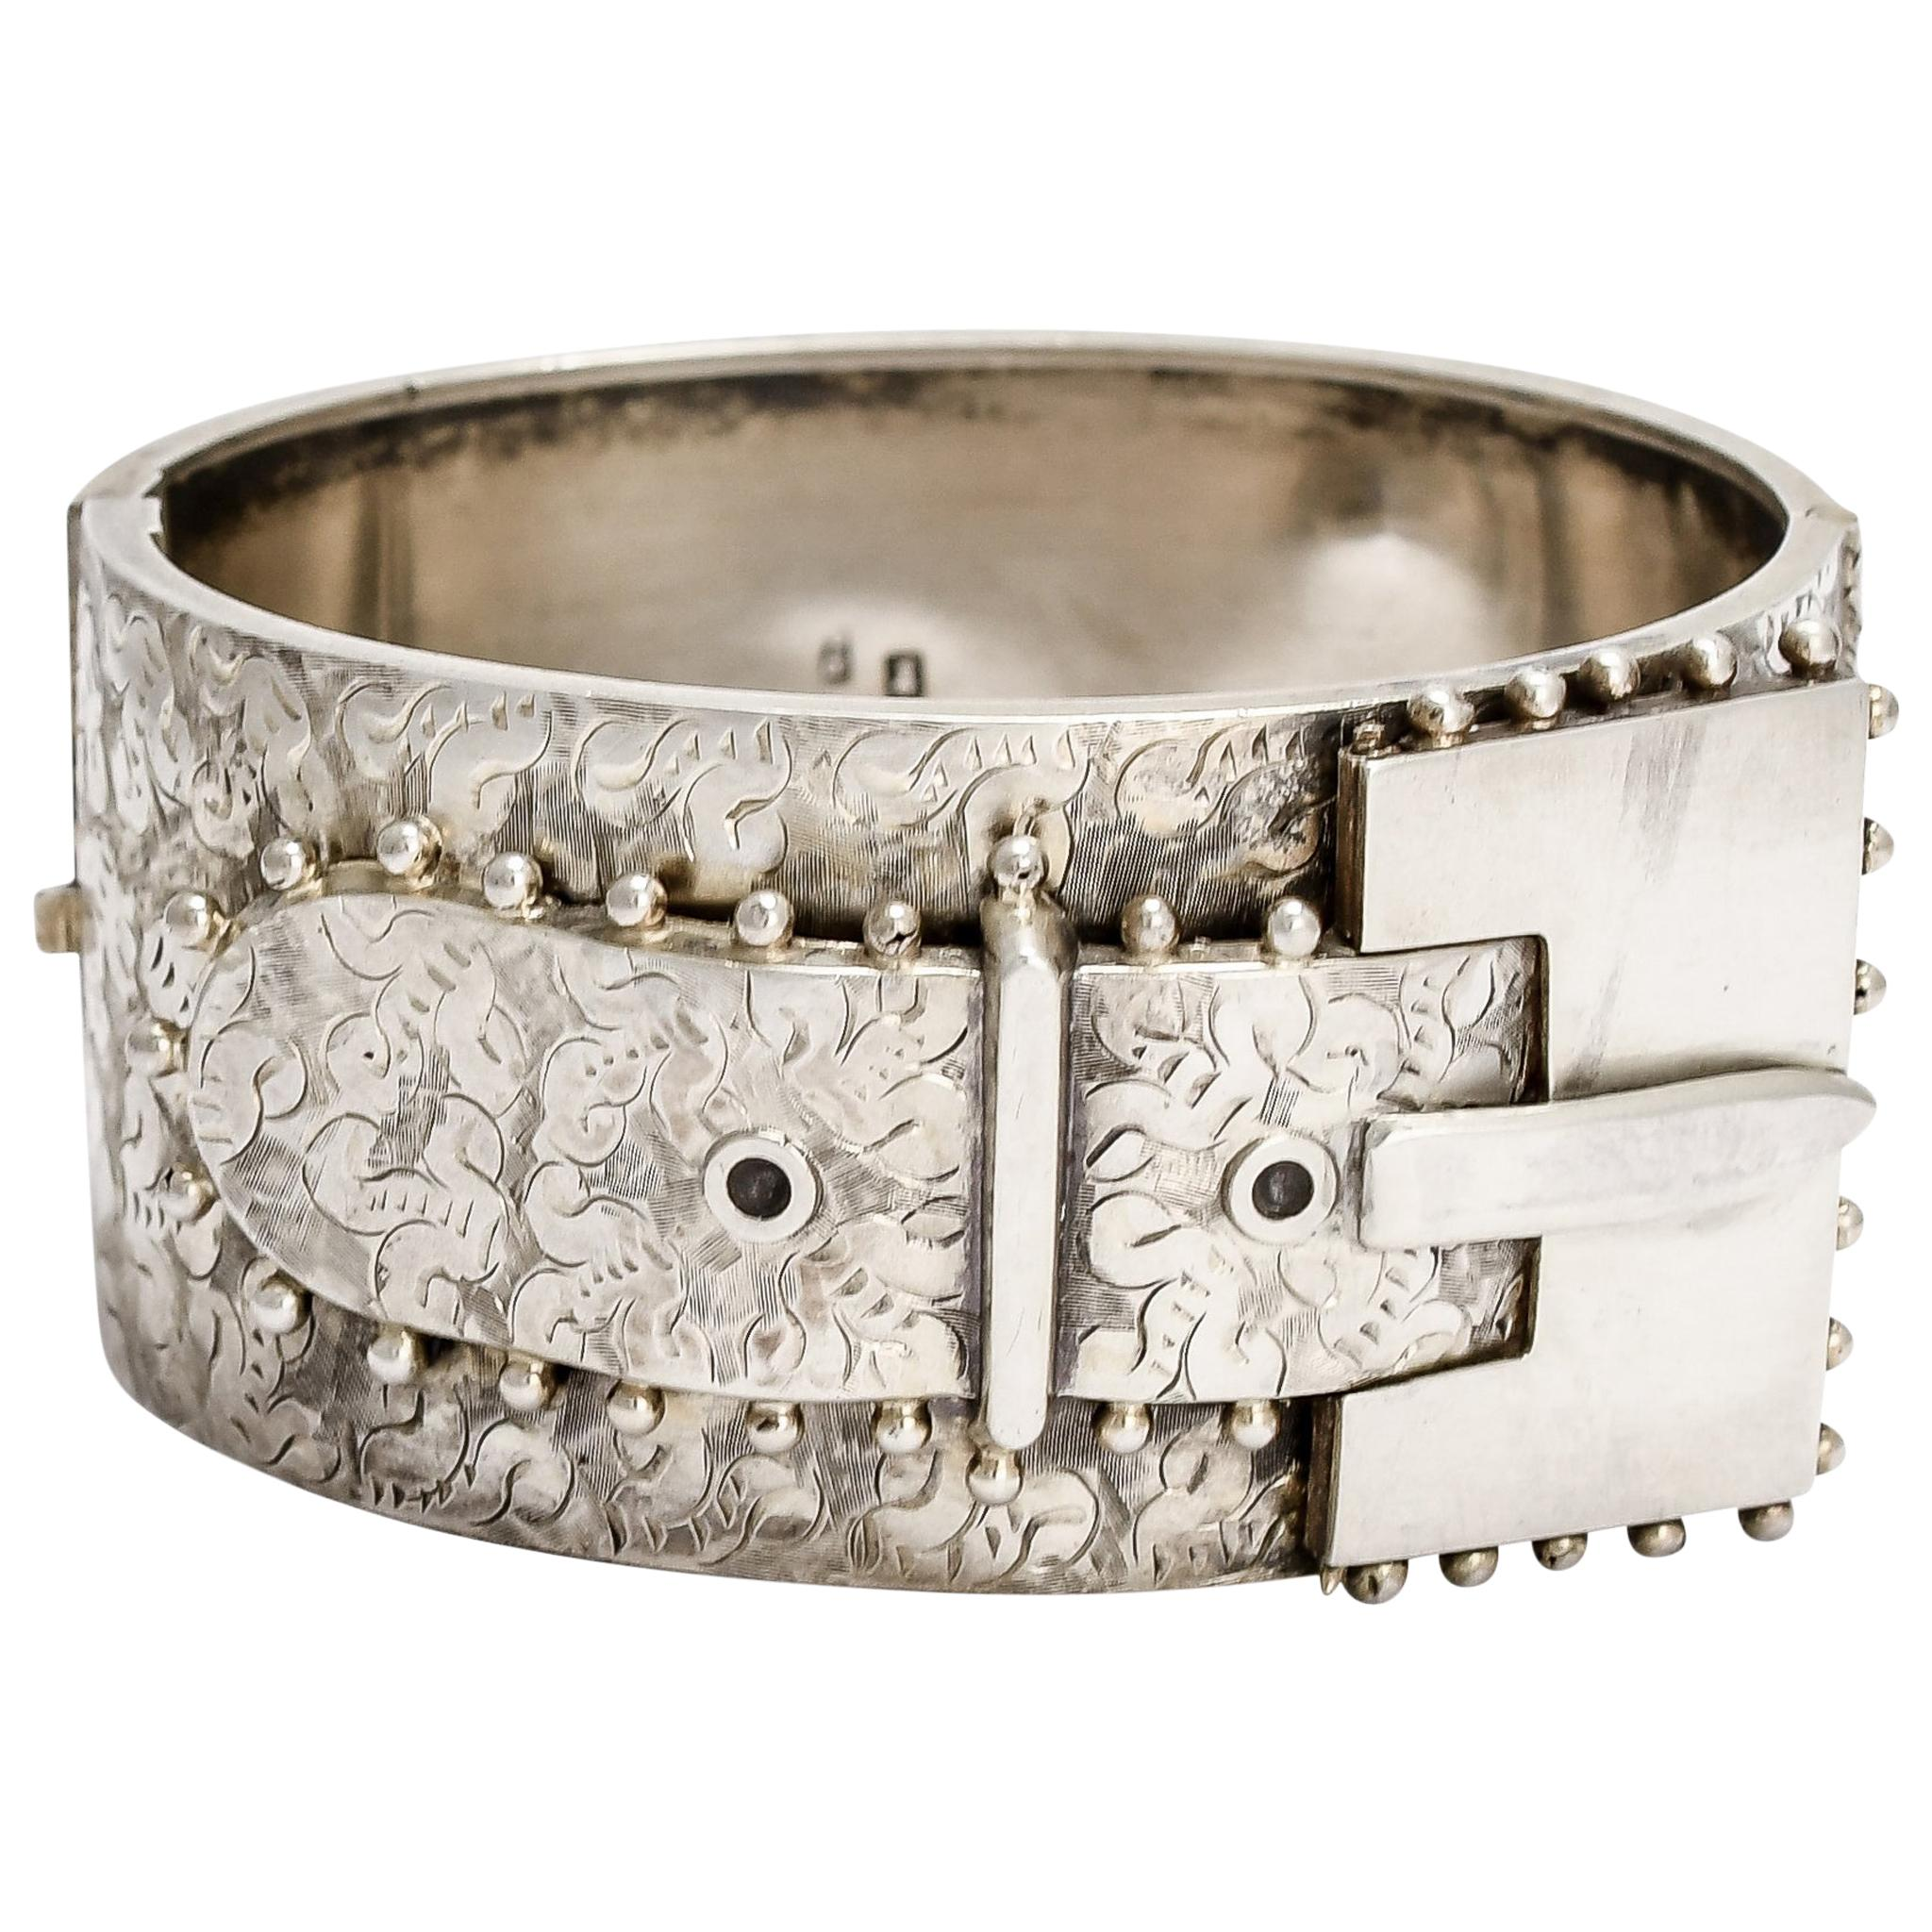 Antique Victorian Oversized Sterling Silver Buckle Bangle